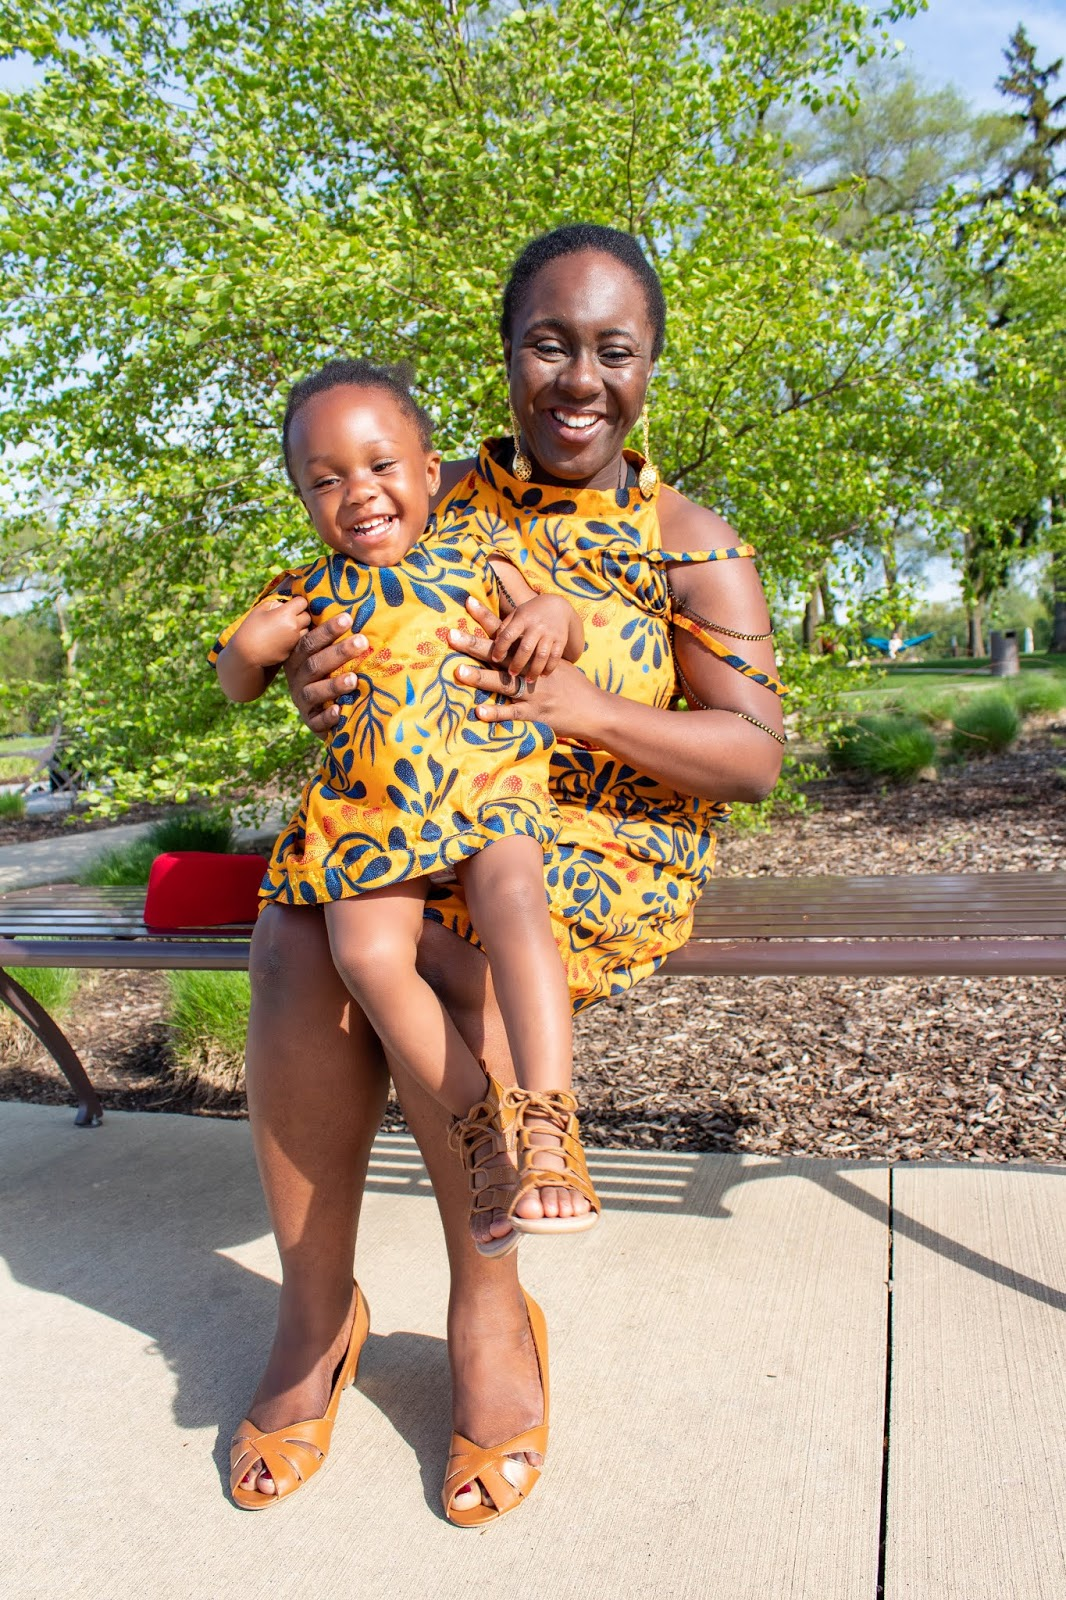 mummy and me ankara, mother and daughter ankara outfits,  african outfits for family,  mother and daughter african attire,  mother and daughter matching african outfits,  mom and daughter matching ankara outfits,  mommy and me african dress,  mommy and me outfits,  mum and daughter ankara style, mummy and me style, mummy and me fashion, asoebi bella, asoebi baby, buy nigerian